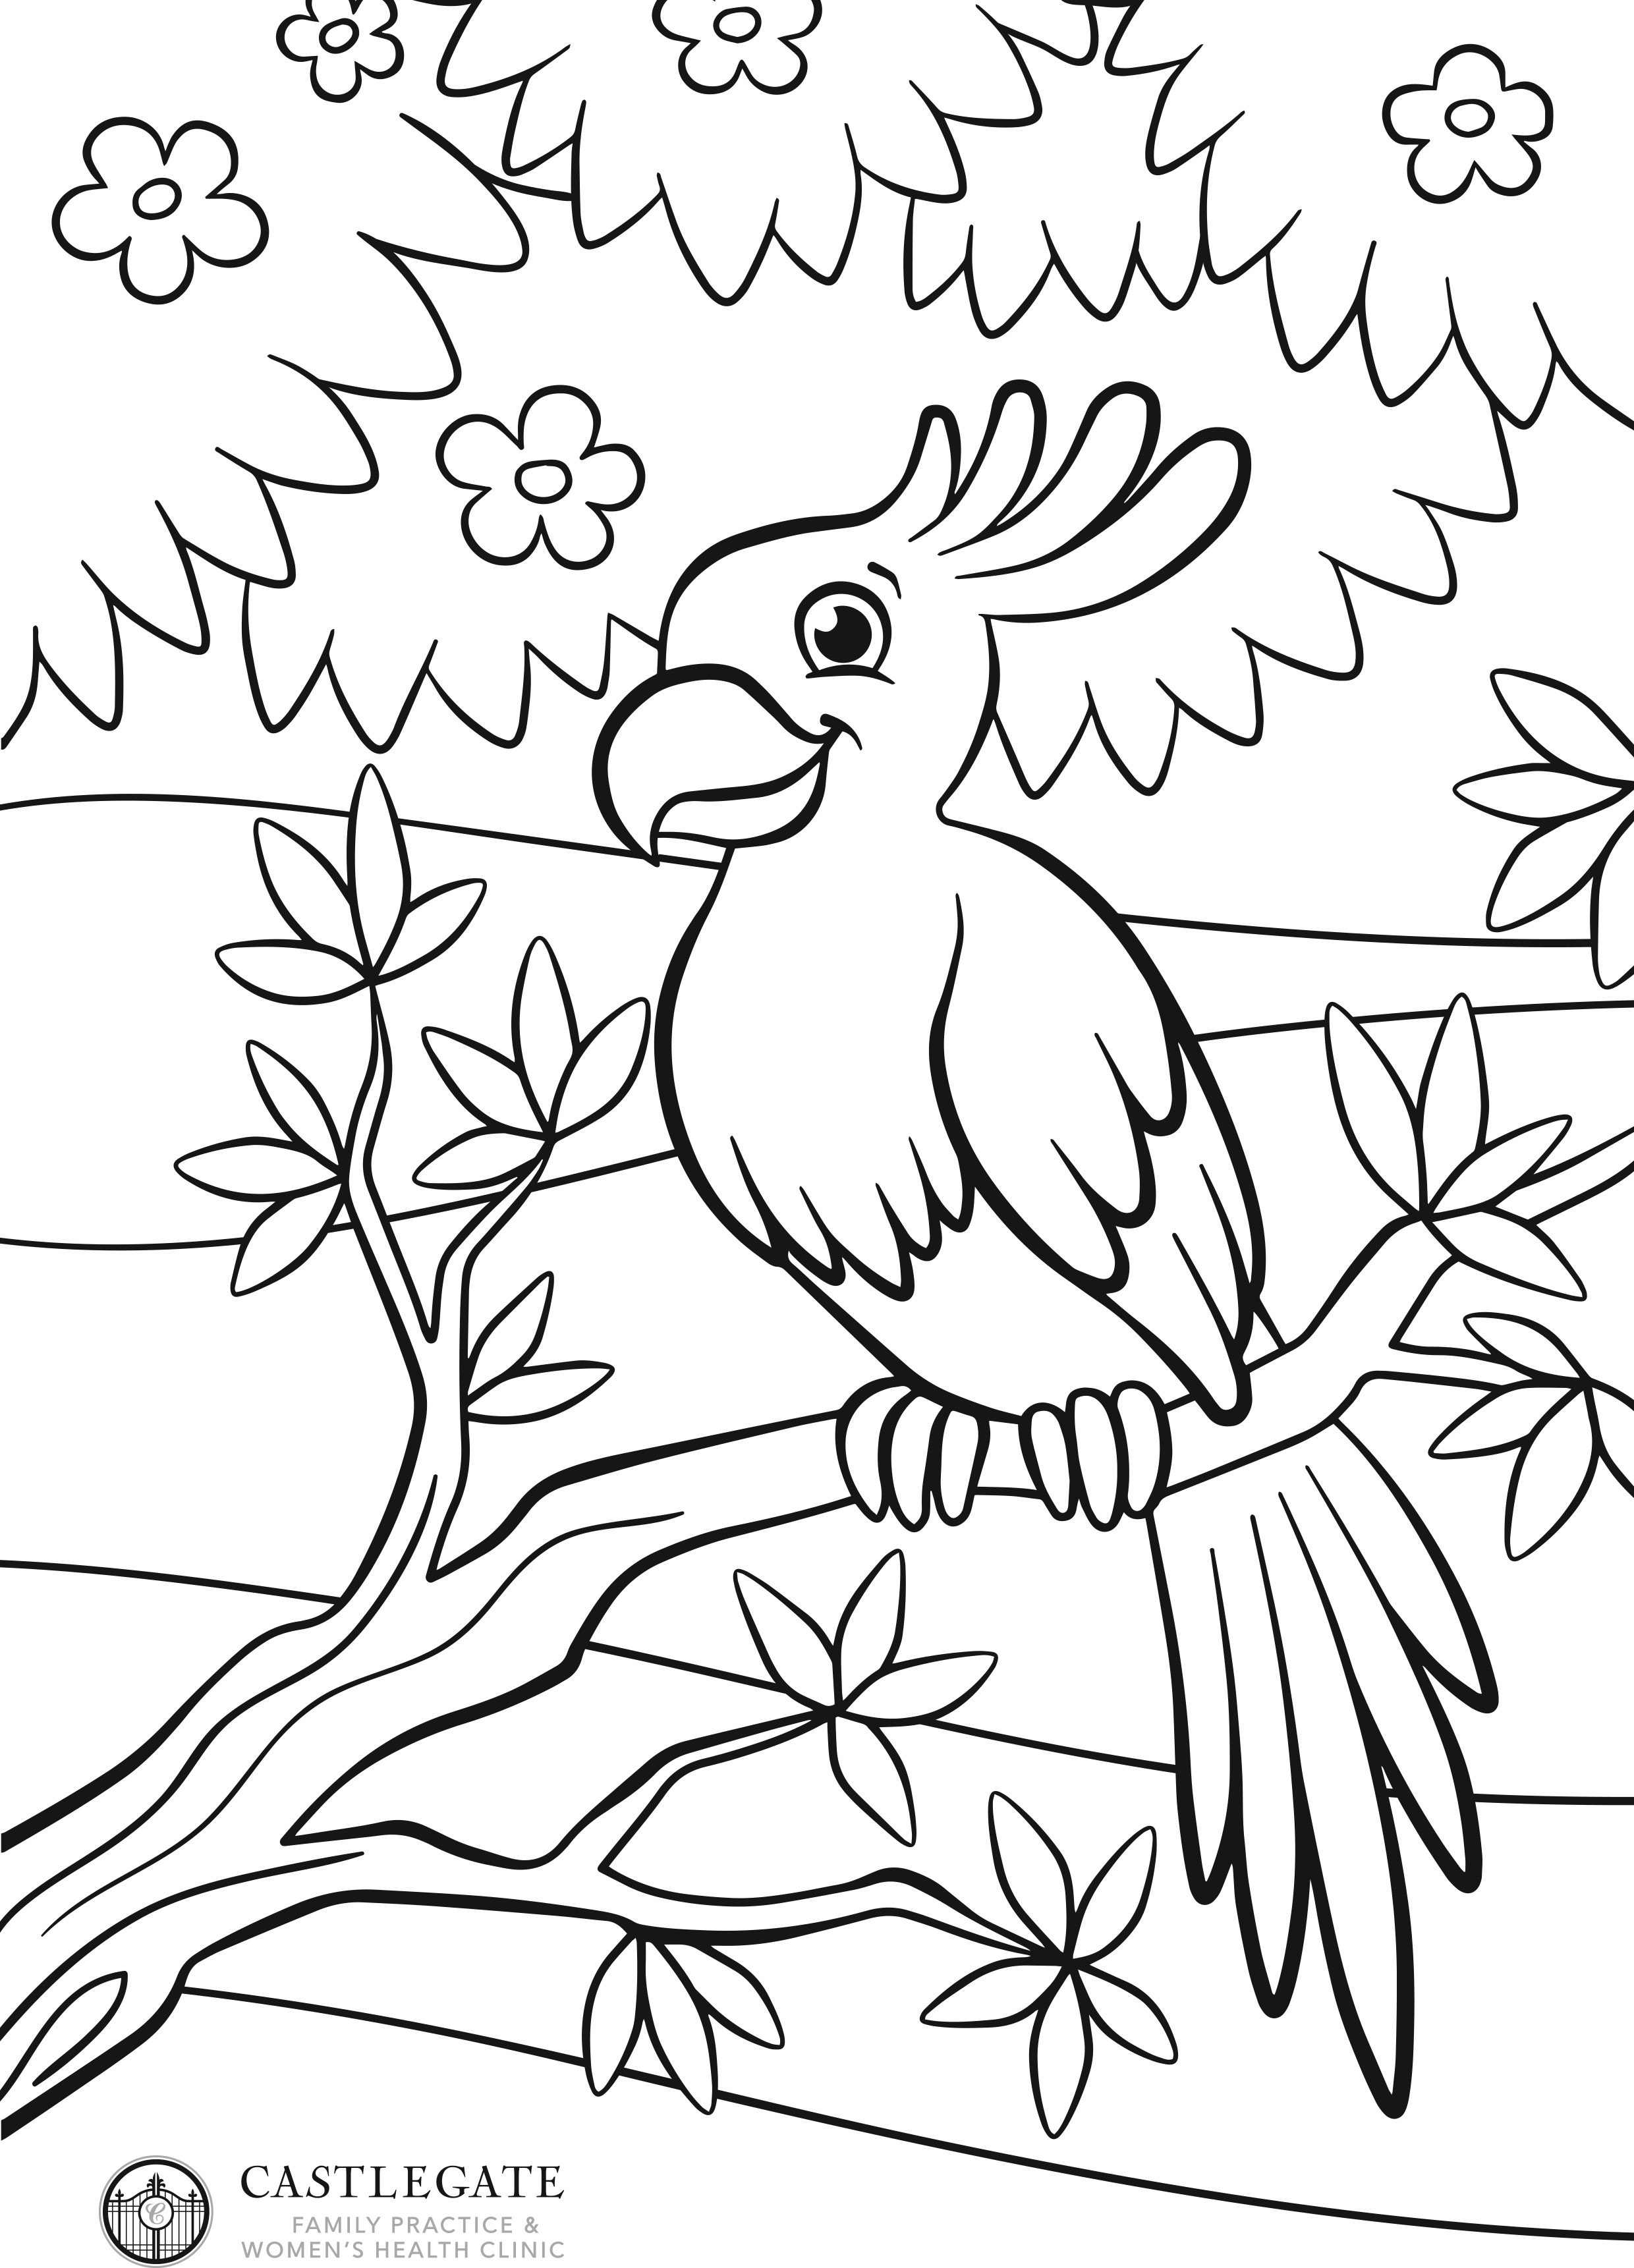 coloring kids pictures 40 exclusive kids coloring pages ideas we need fun pictures kids coloring